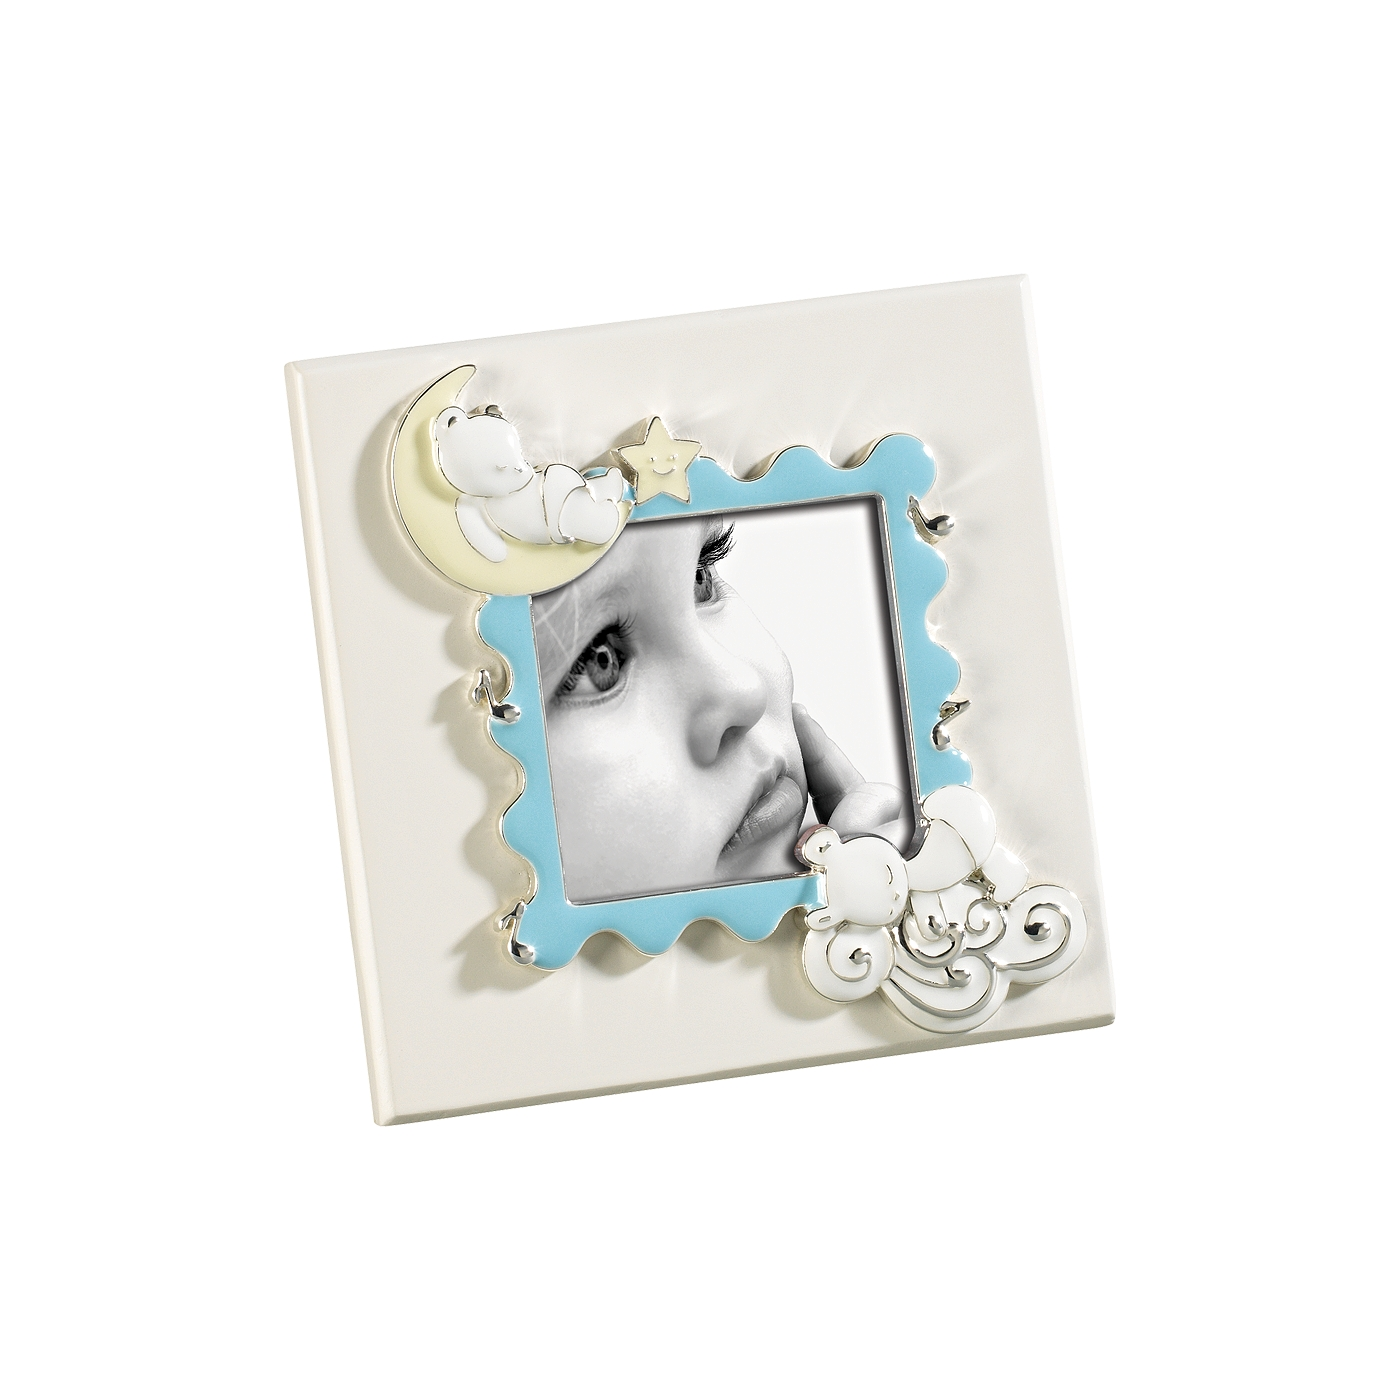 A900  FRAME BABY BLUE 6x6